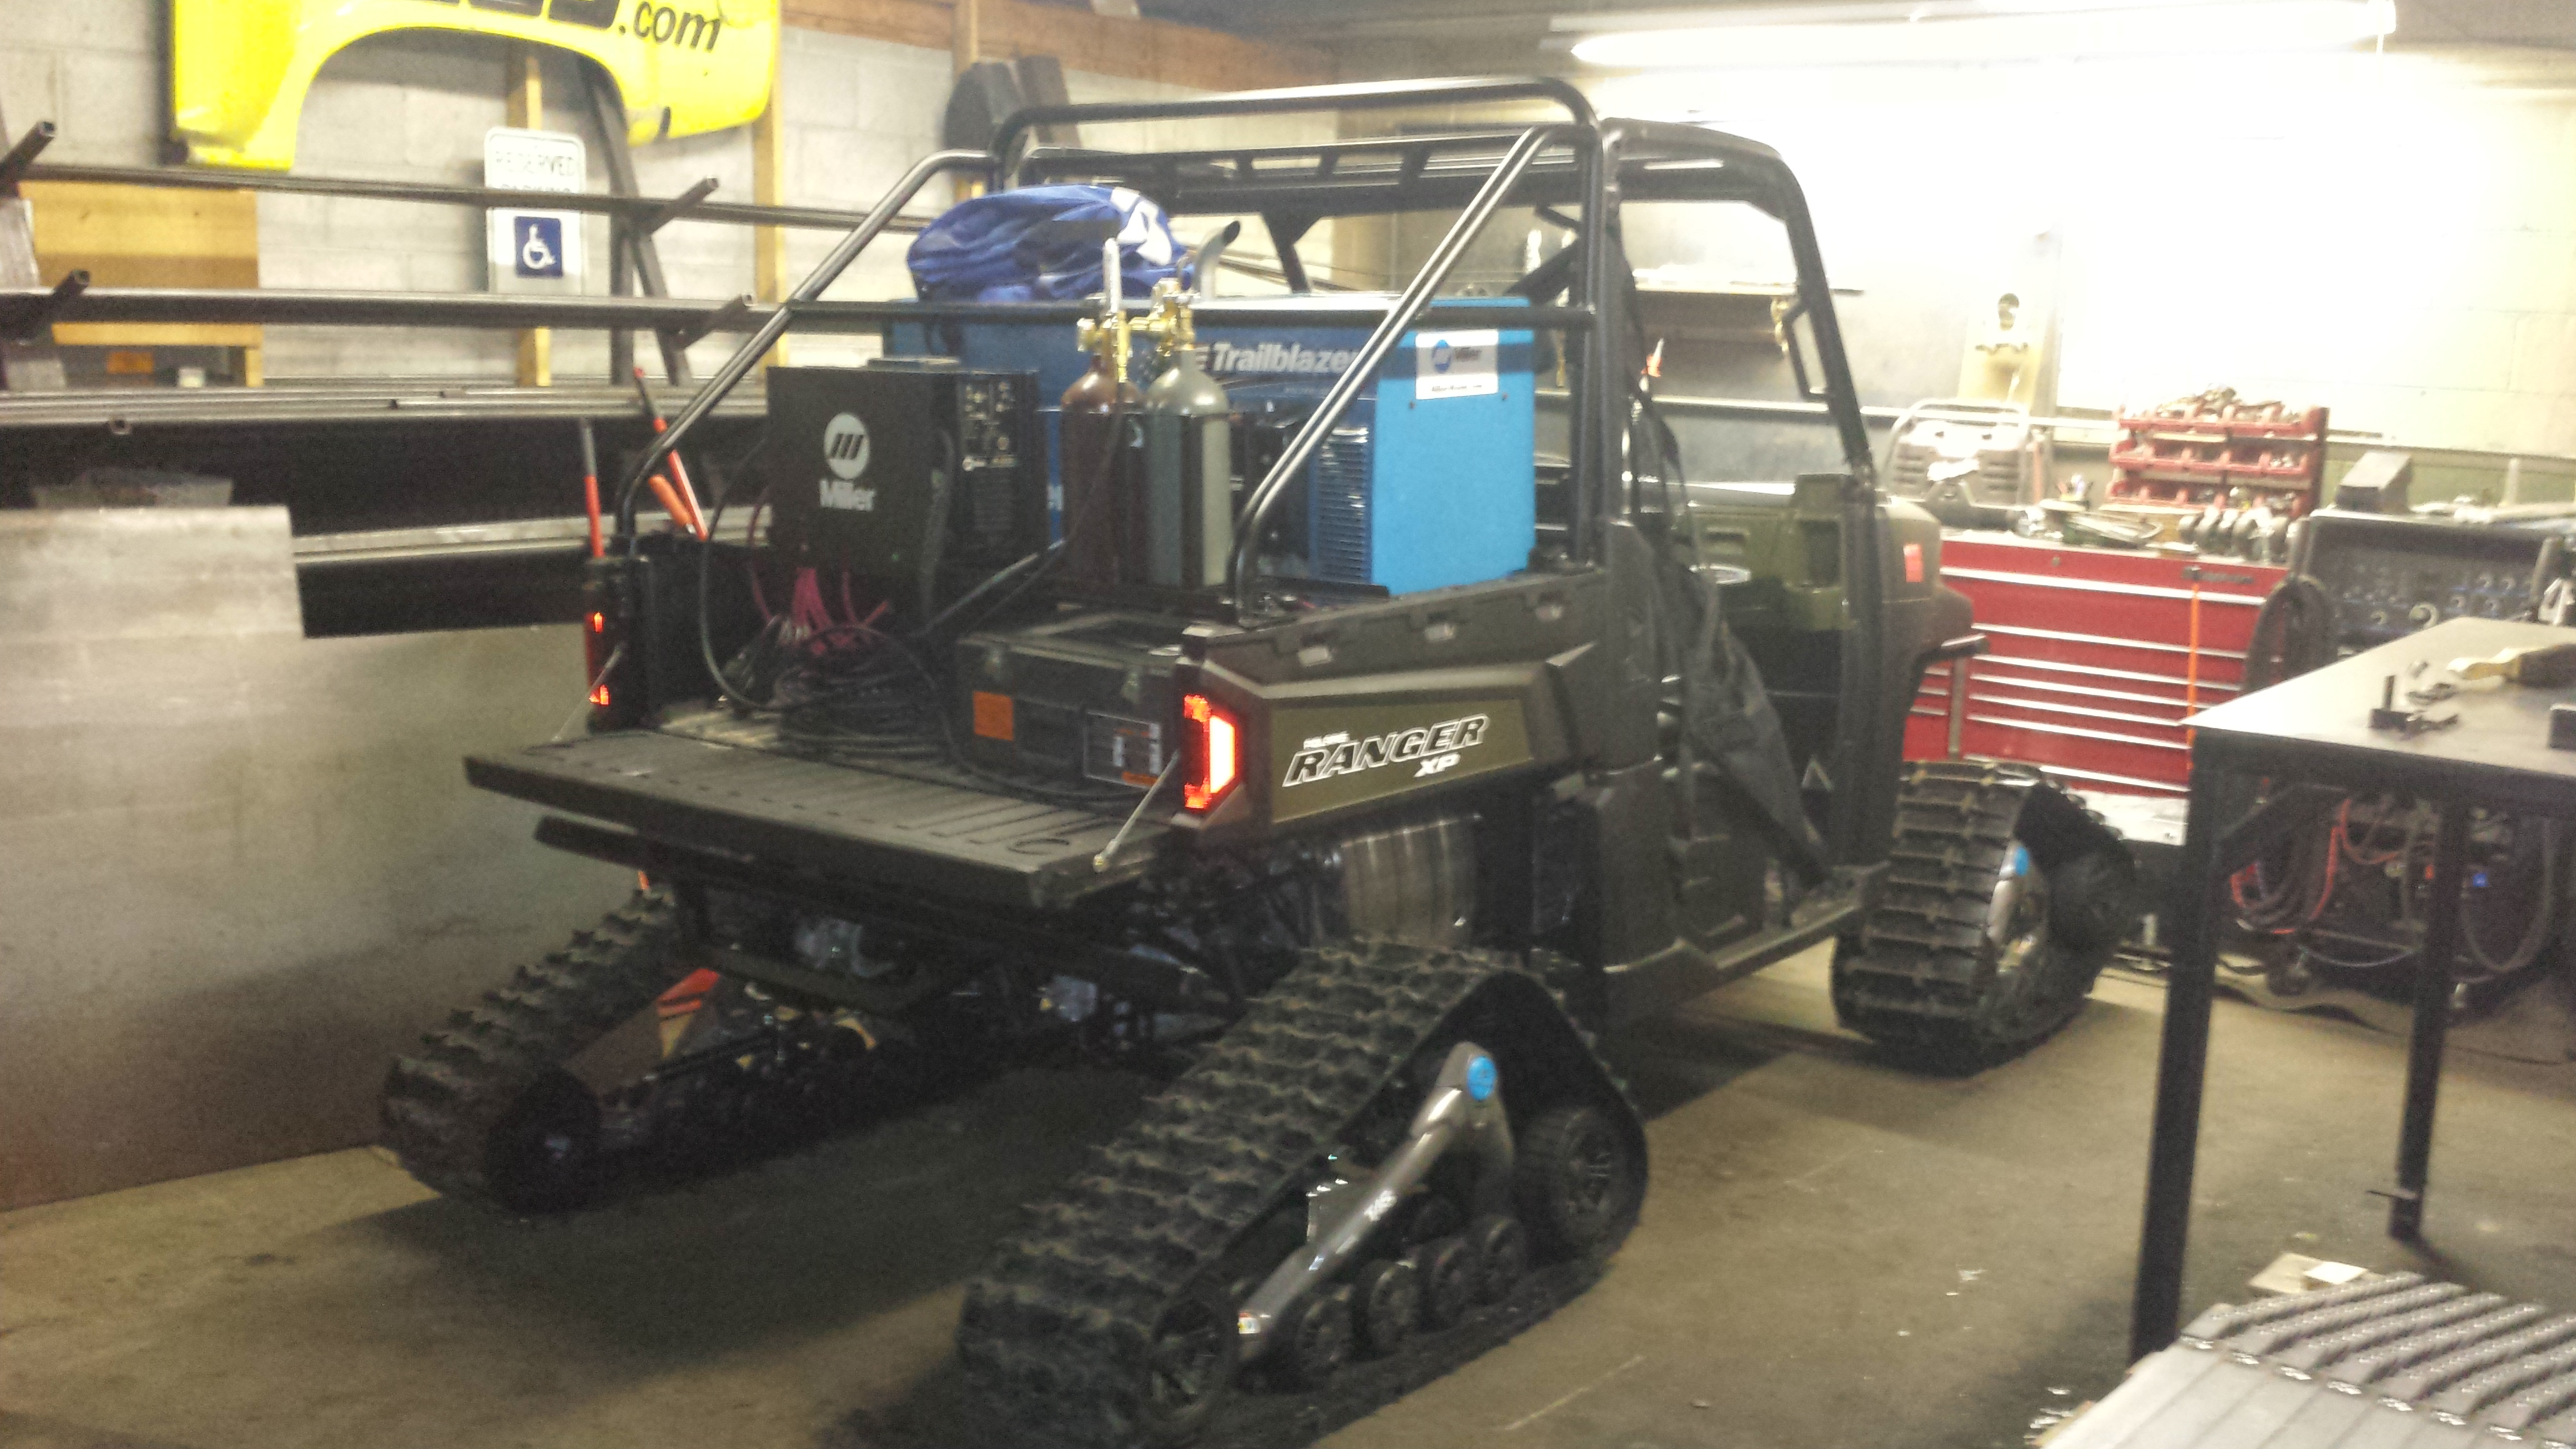 My 2014 Polaris Ranger Mobile Welding Set Up